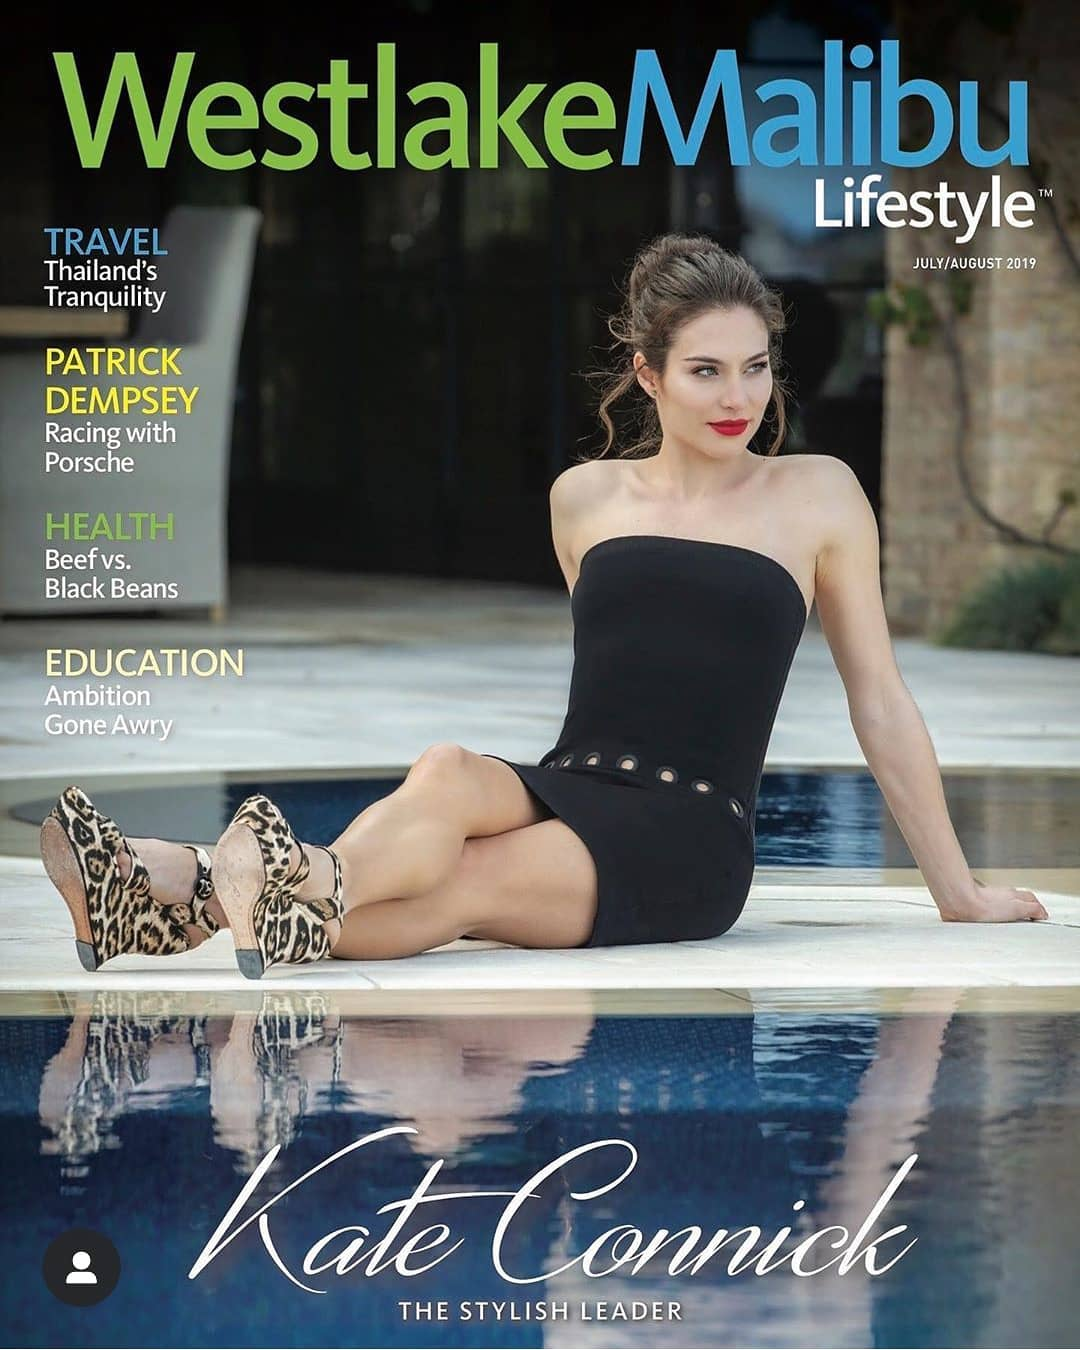 KATE CONNICK - Westlake Malibu Magazine Cover